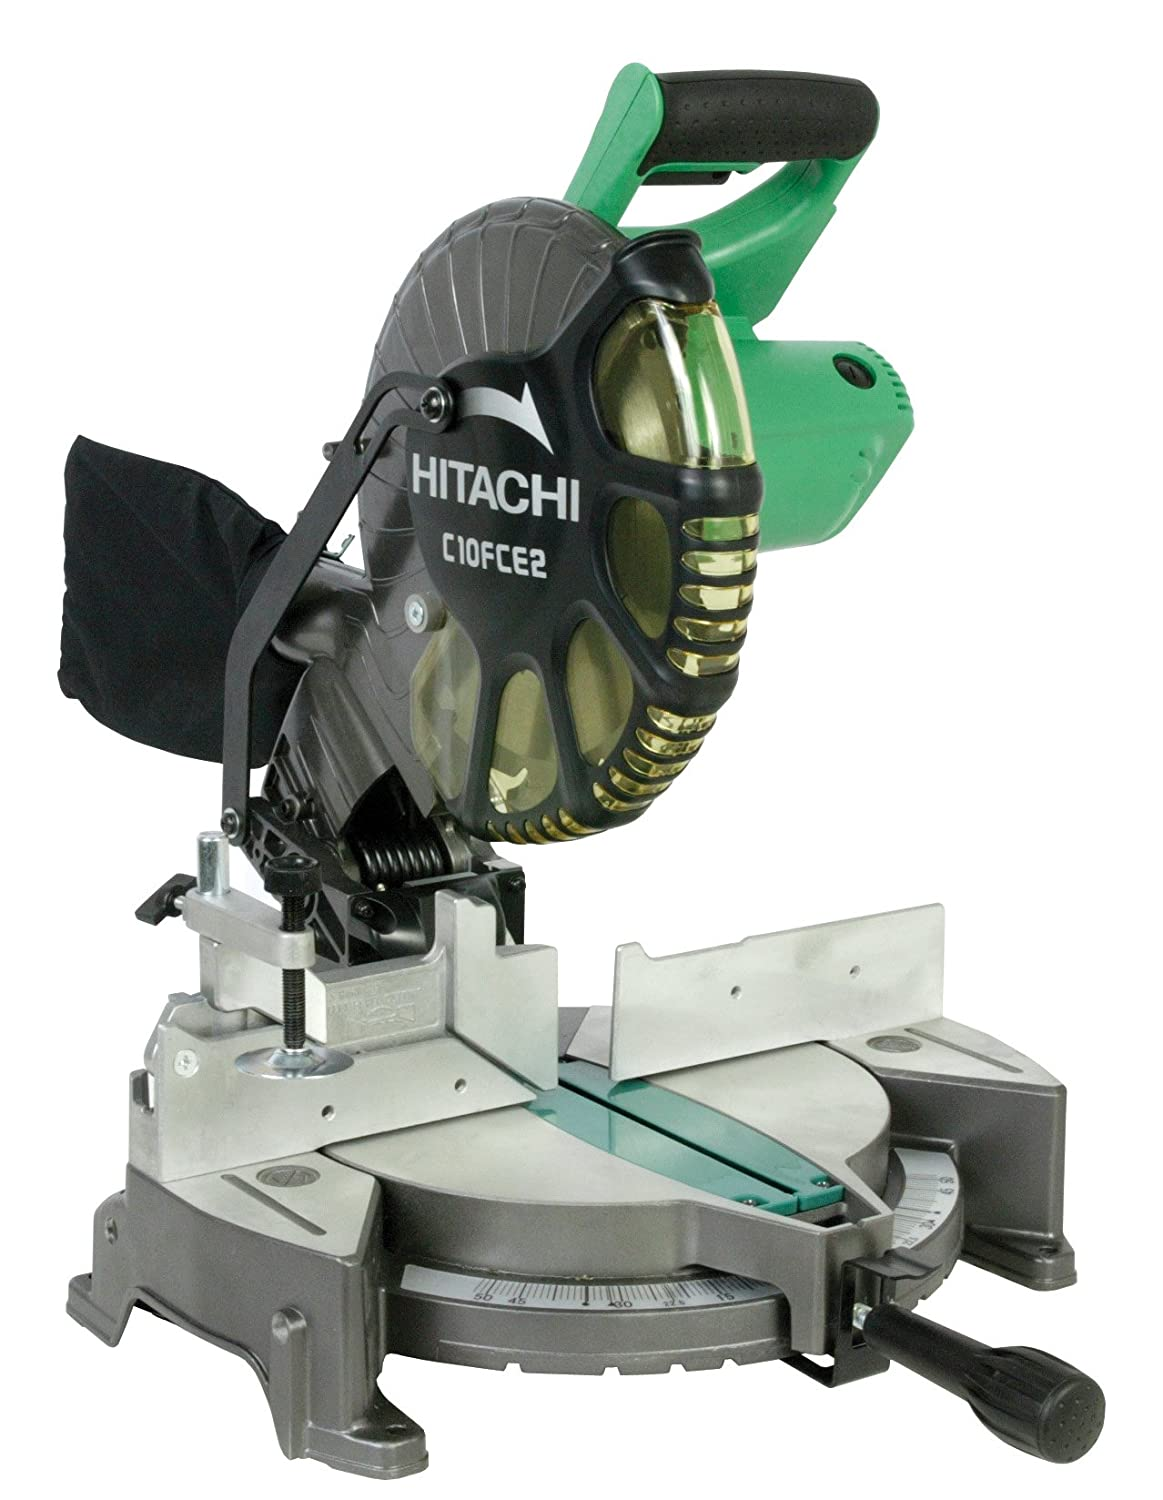 Hitachi C10FCE2 - Best Miter Saw in 2017